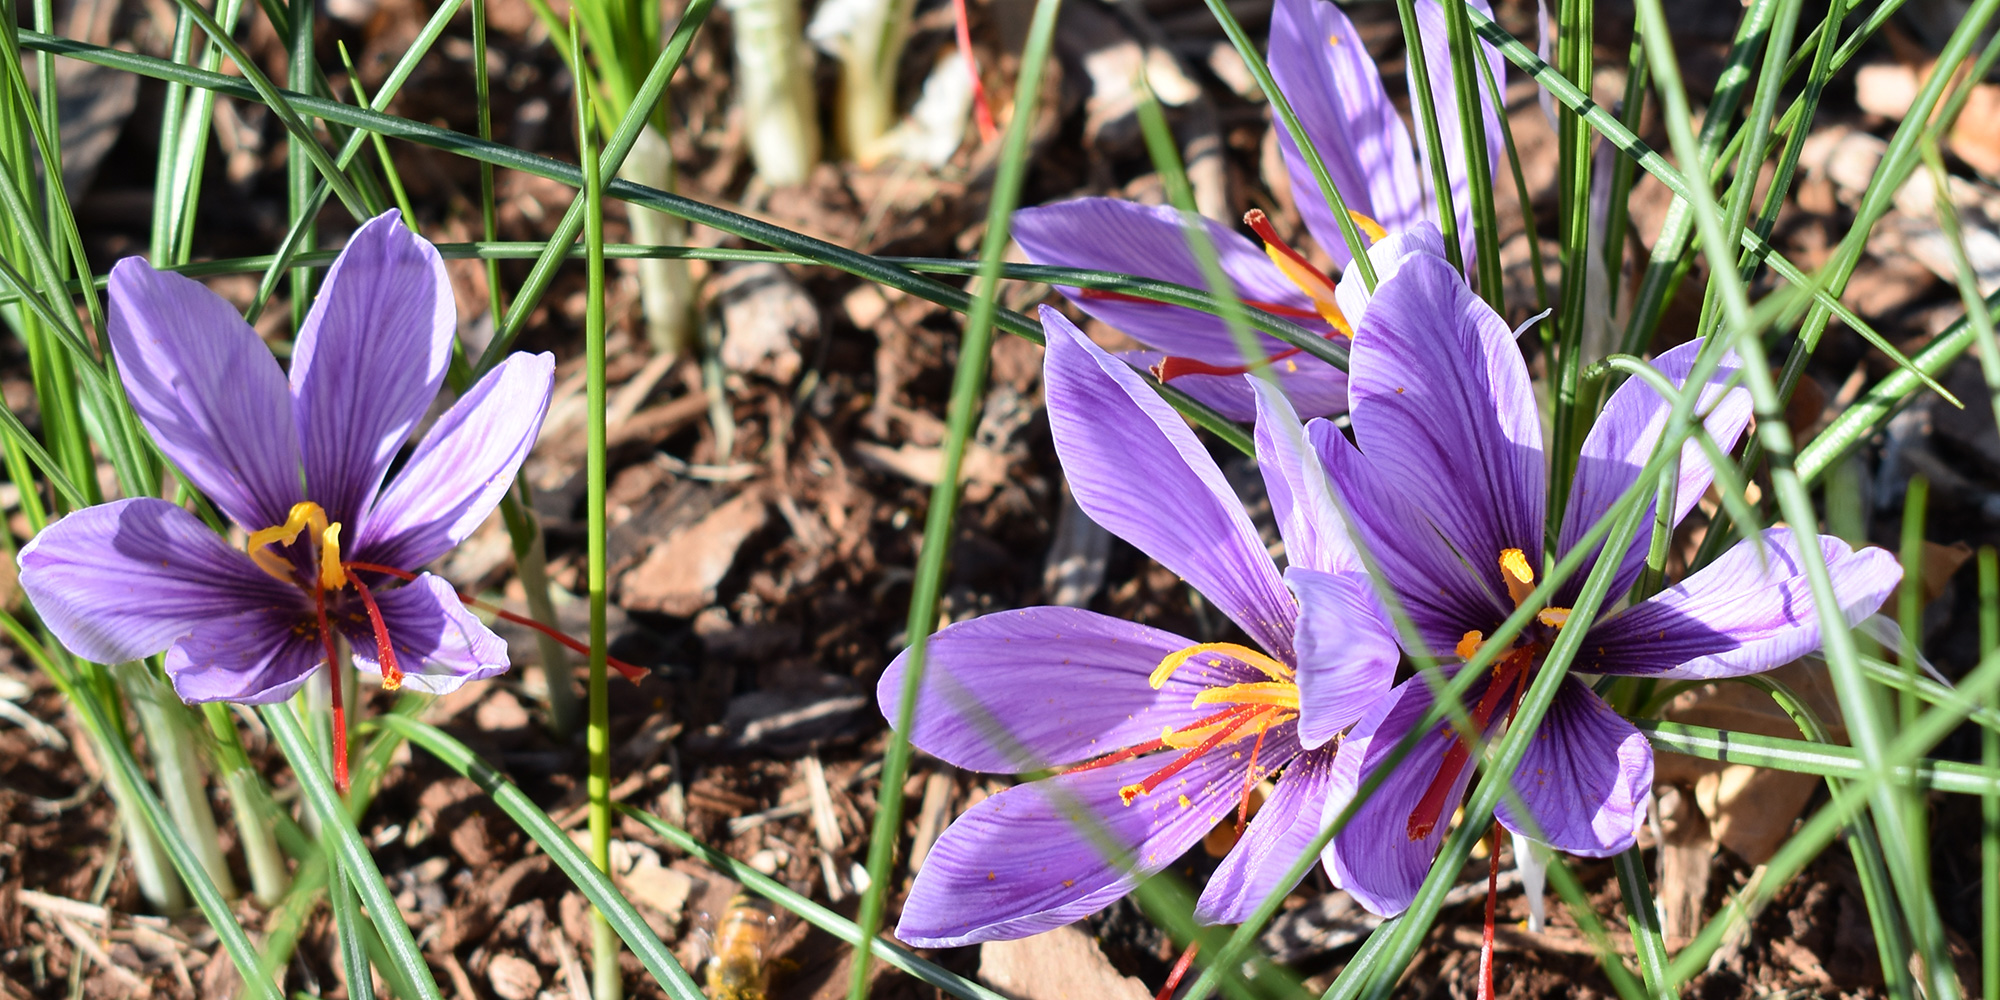 Purple saffron crocus flowers with red stigmas